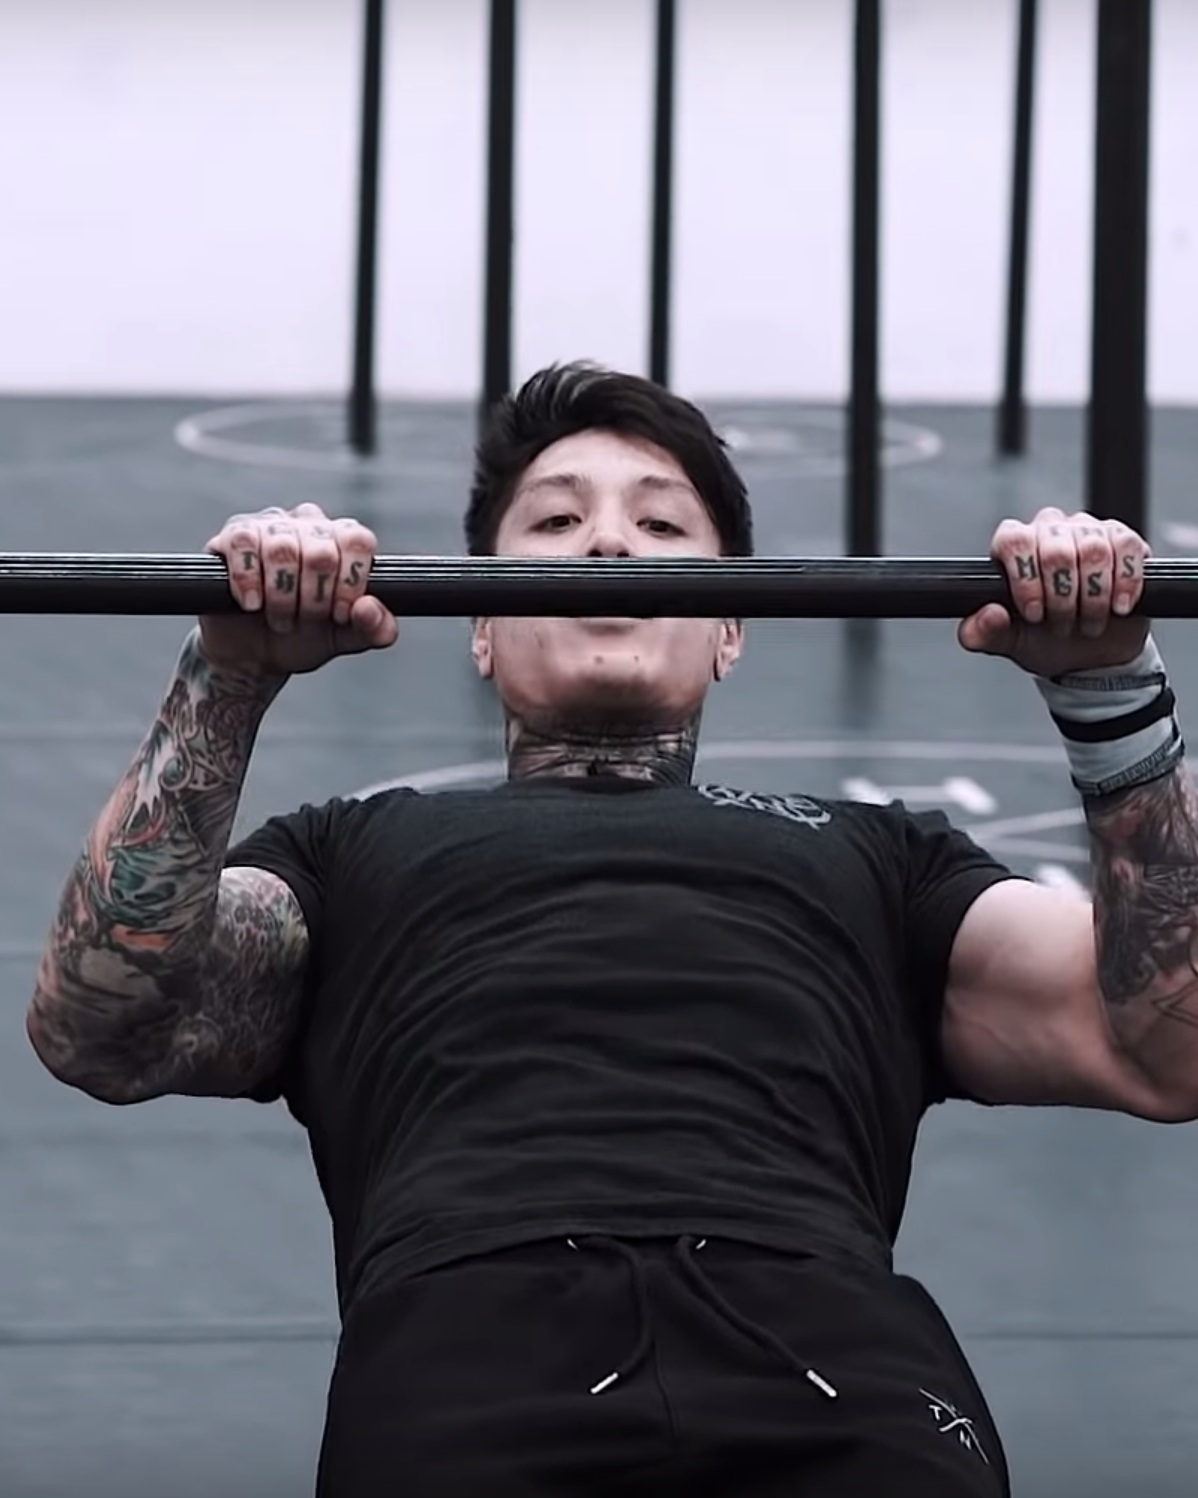 How to Start Calisthenics - The Pull-up - with Chris Heria